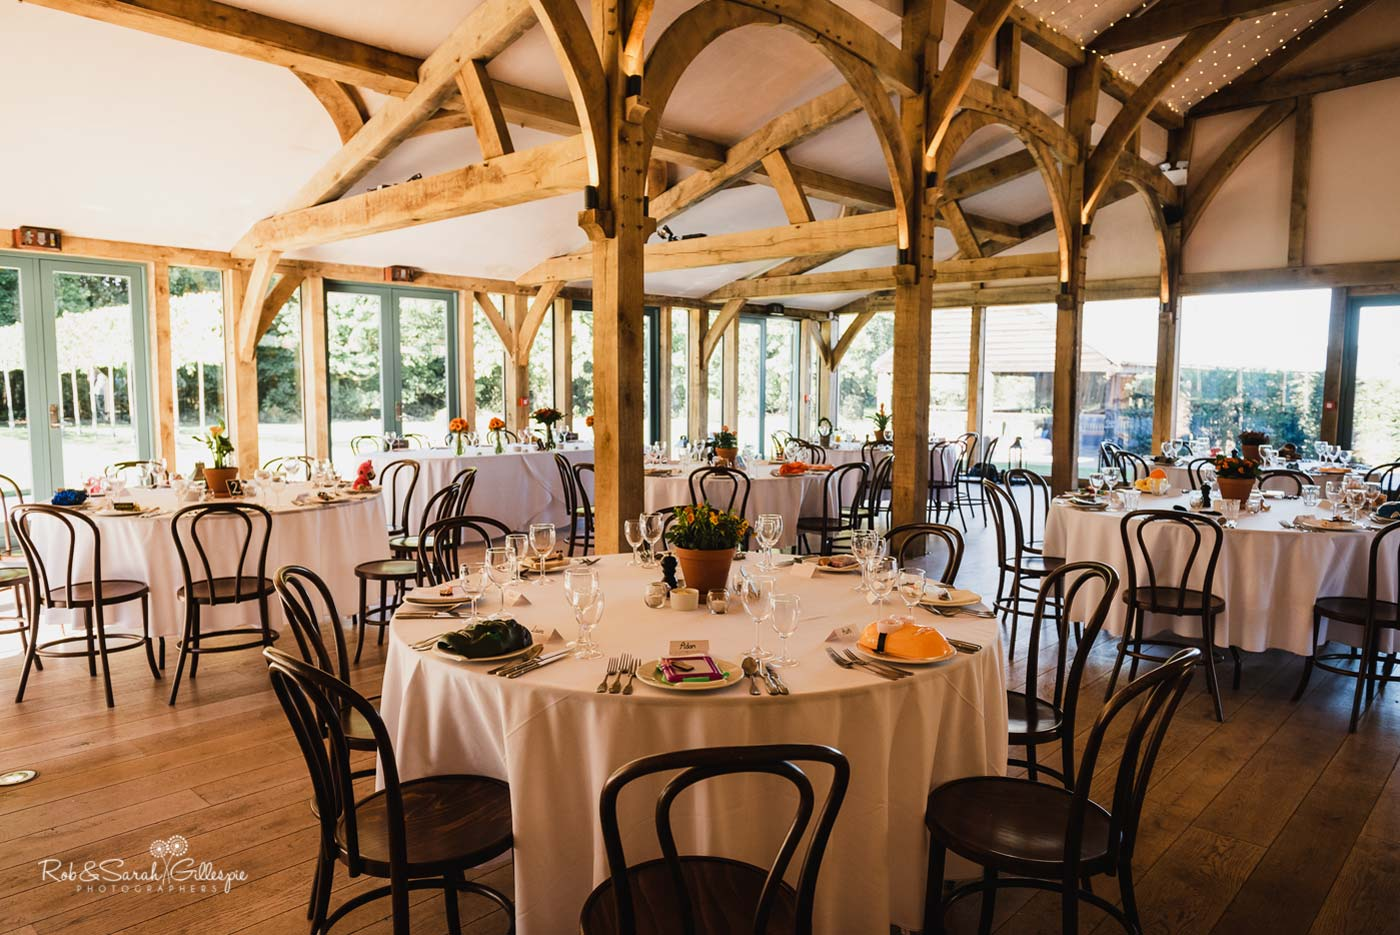 Wedding breakfast at Hazel Gap Barn